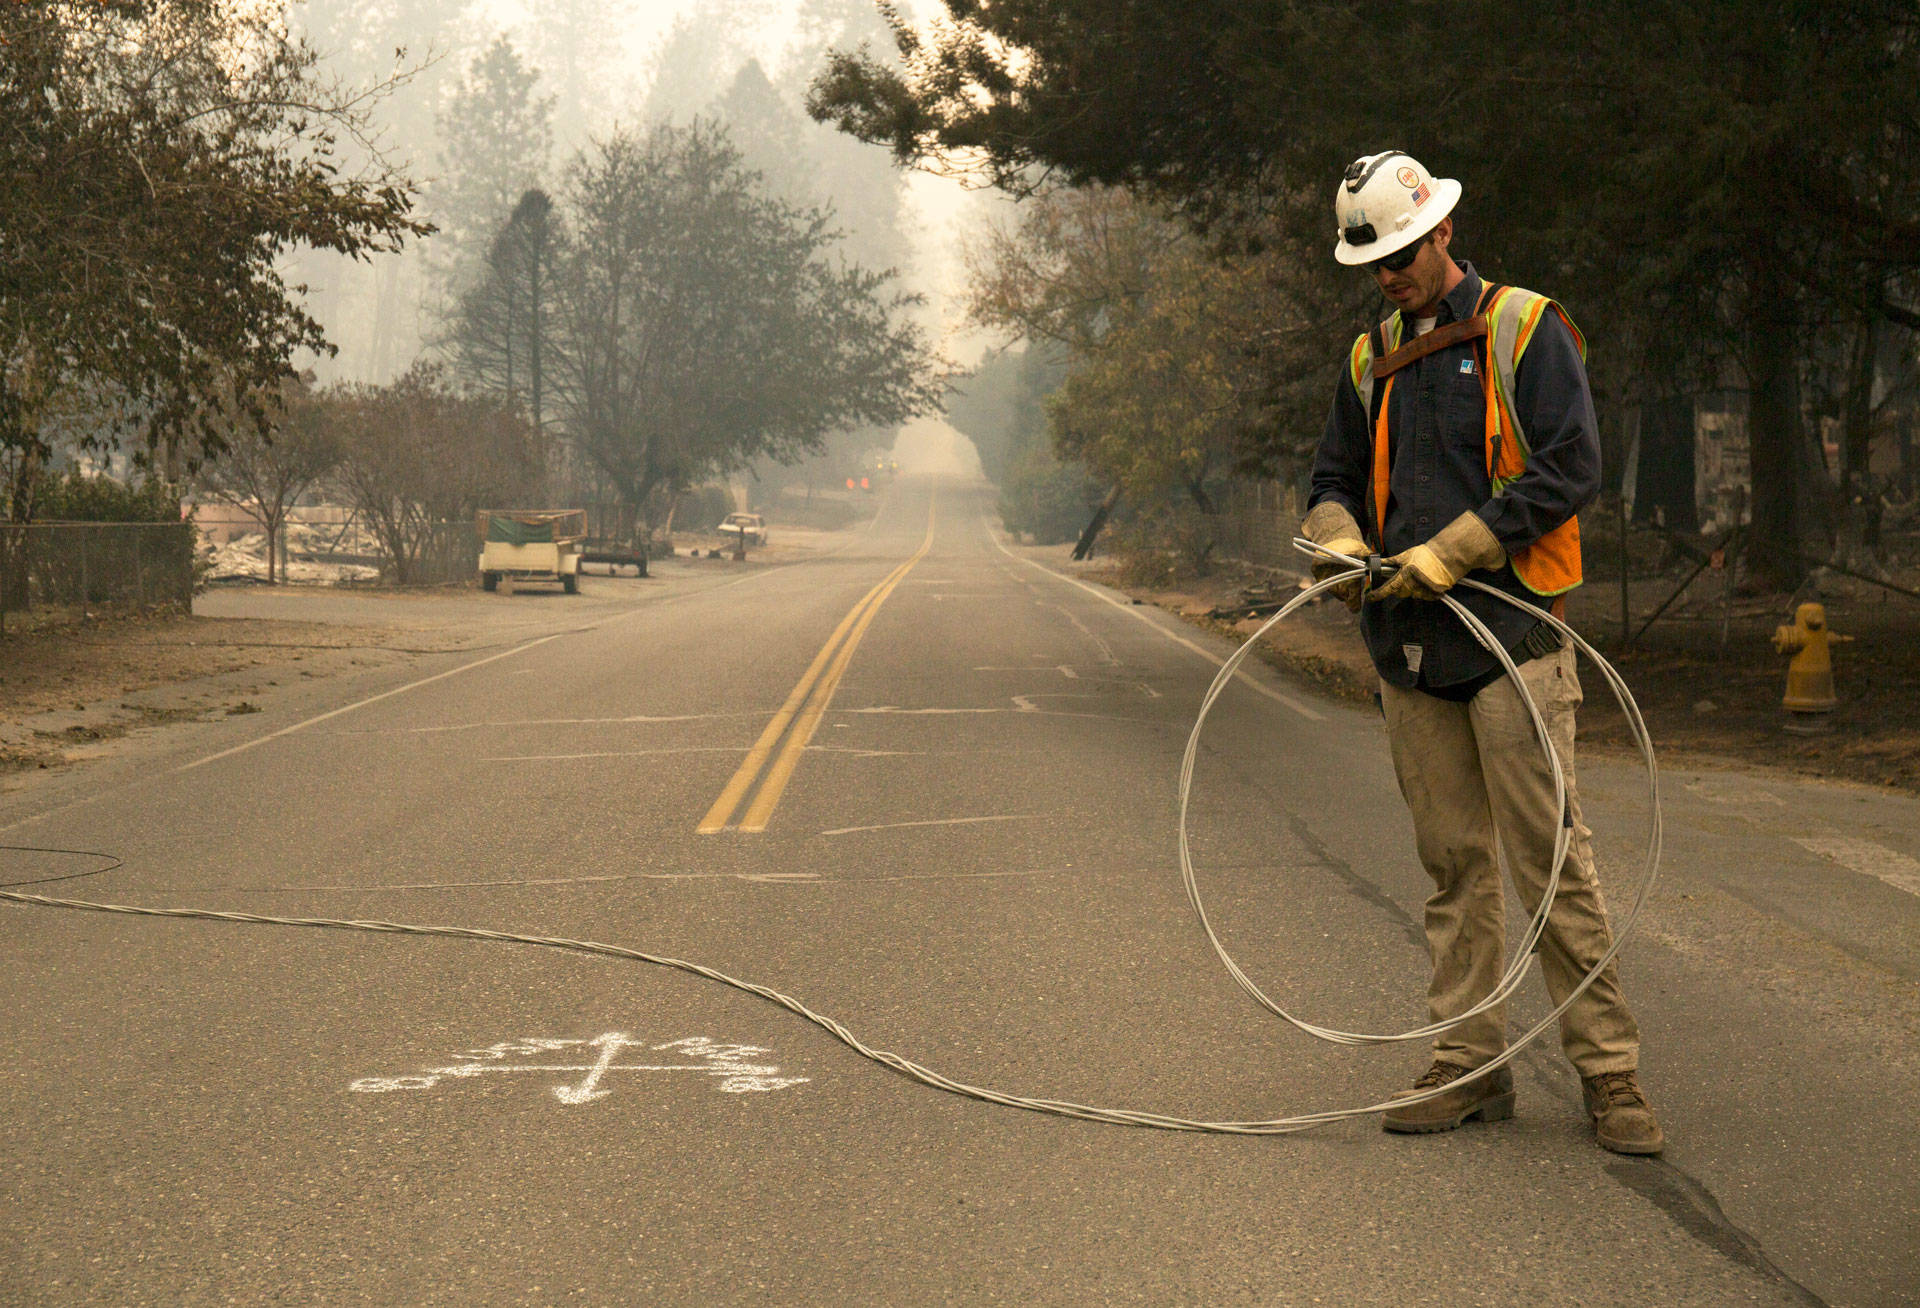 A PG&E worker clears fallen power cables from a road in the Butte County town of Paradise after the Camp Fire swept through the community in November 2018.  Anne Wernikoff/KQED